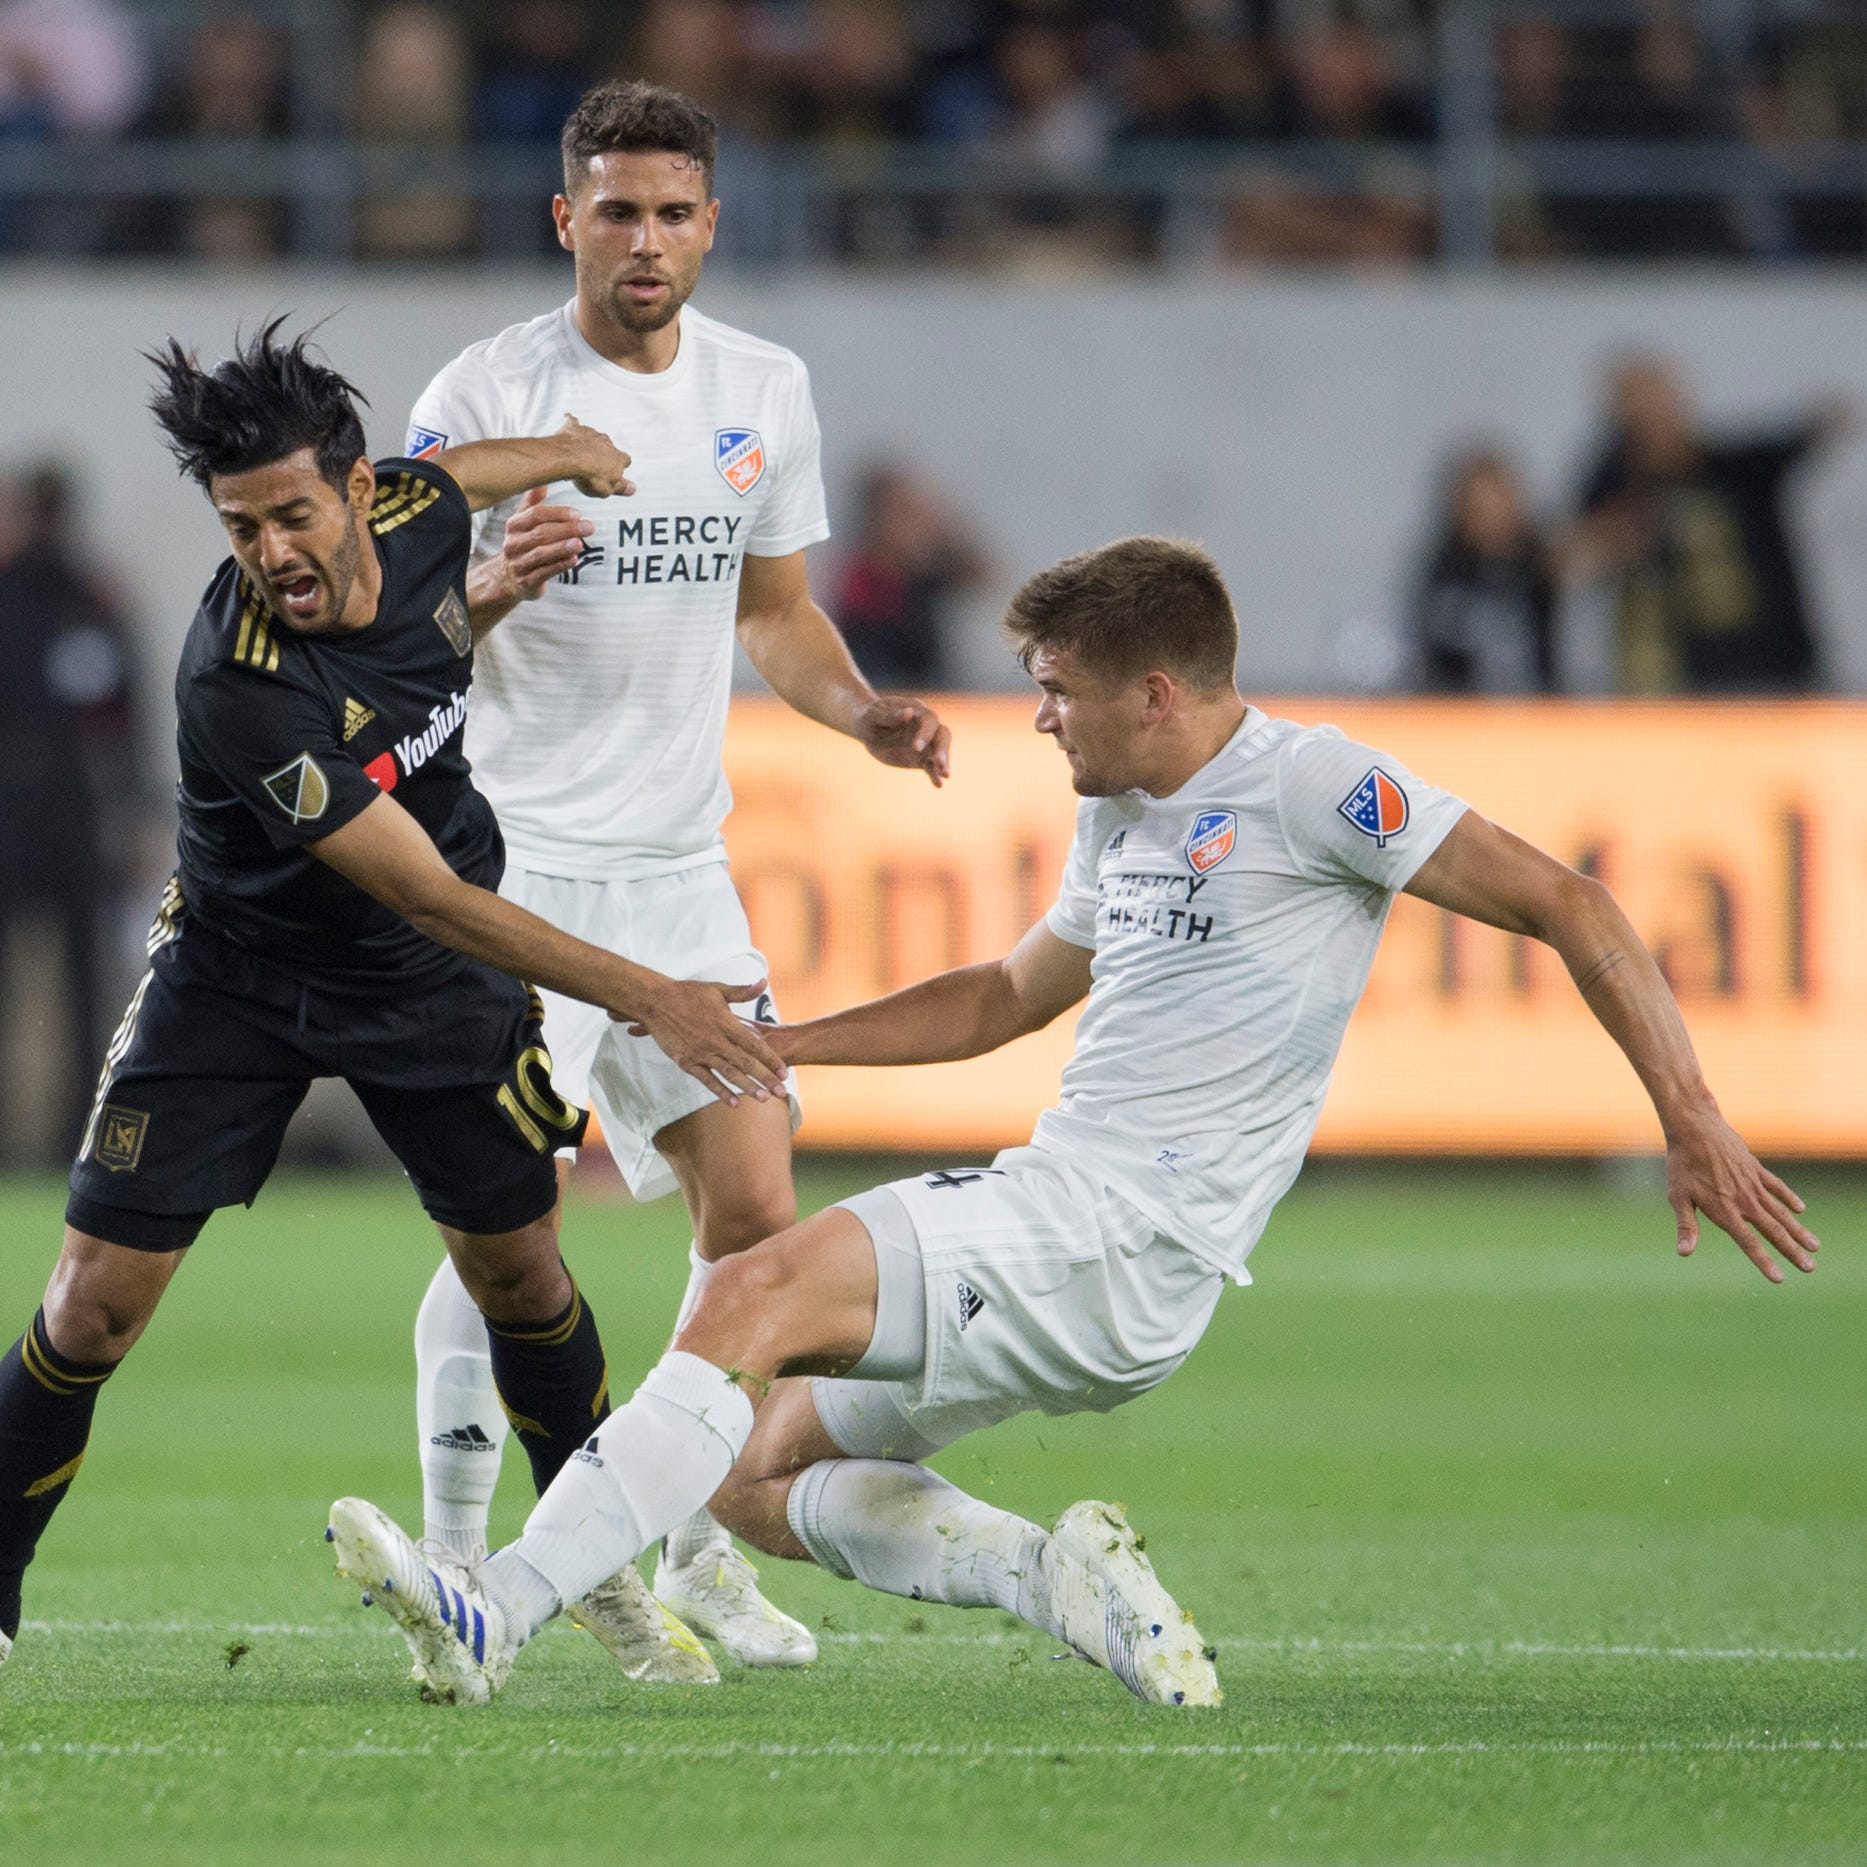 Hard-luck FC Cincinnati blanked in 2-0 loss at LAFC's Banc of California Stadium